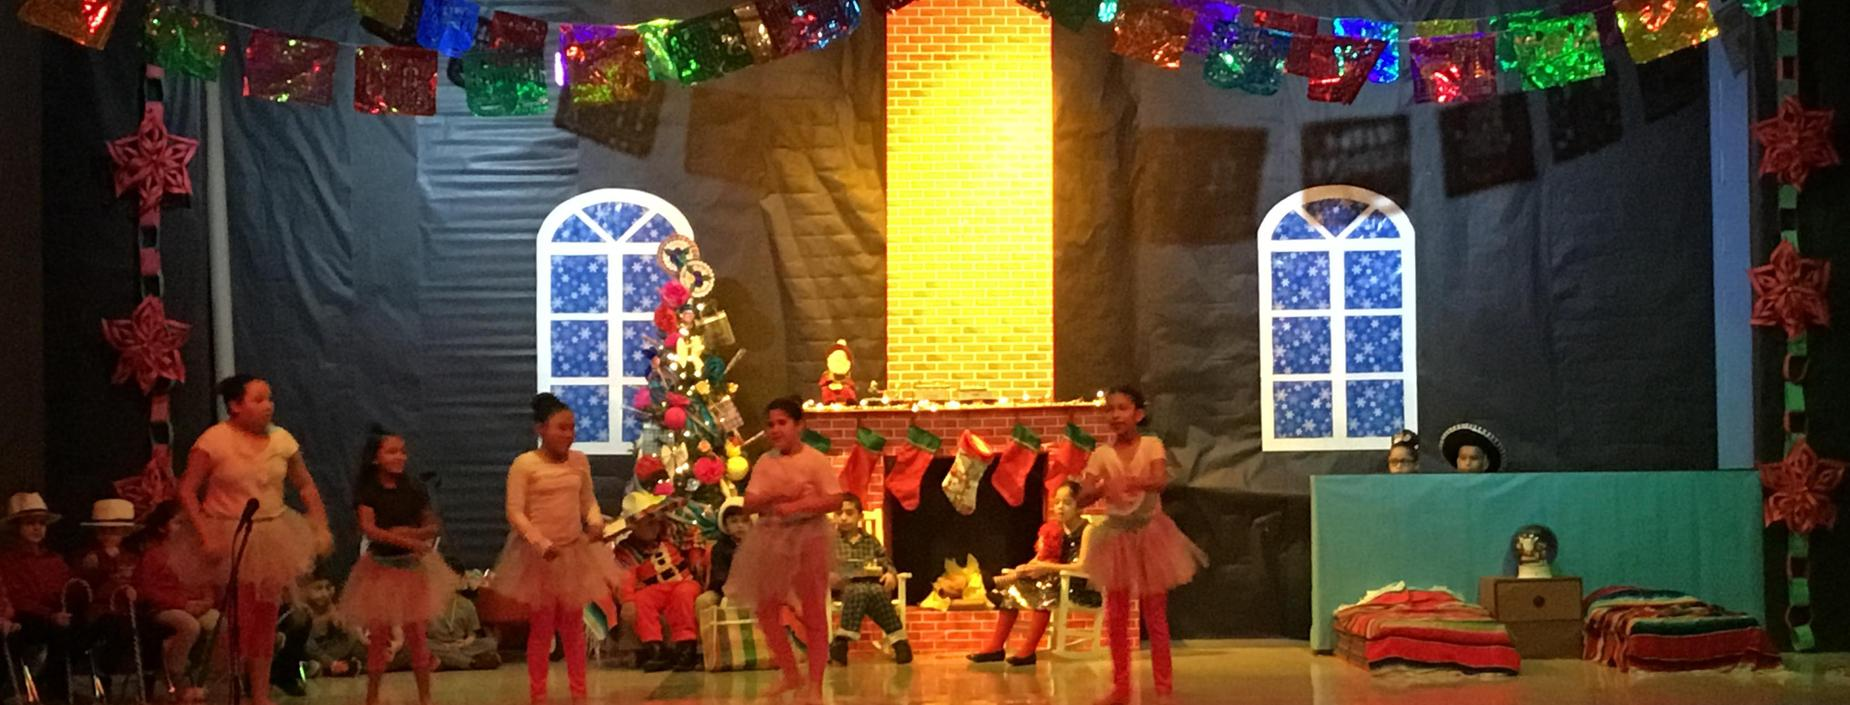 Image of Dancers at Christmas Program